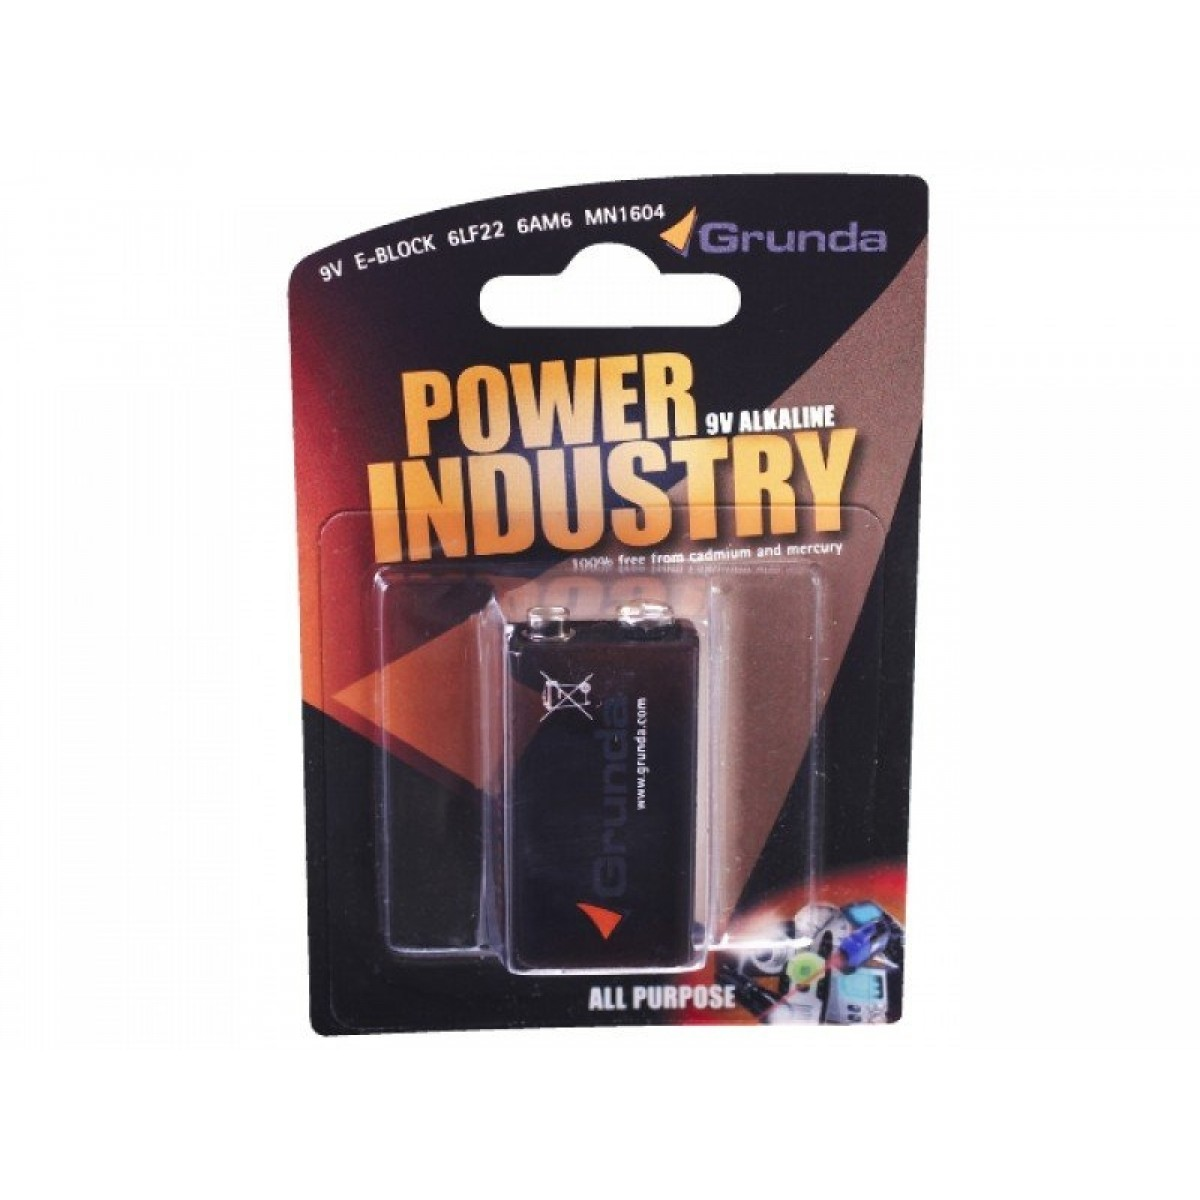 Grunda Power Batteri 1 stk alkaline 9V-31